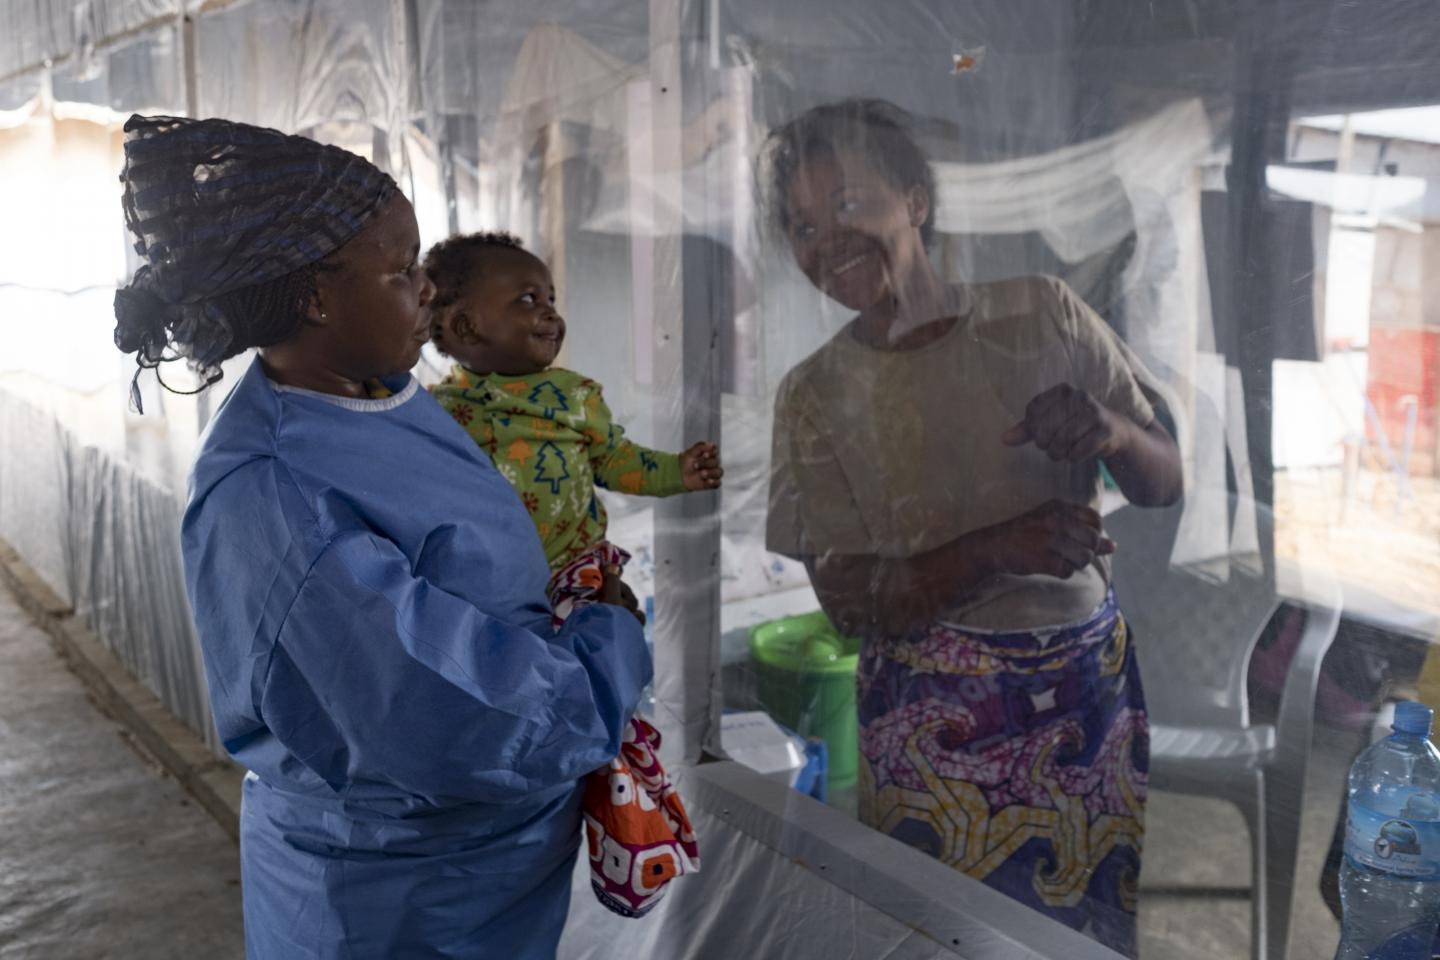 Democratic Republic of the Congo. A baby looks at his mother at an Ebola treatment centre.